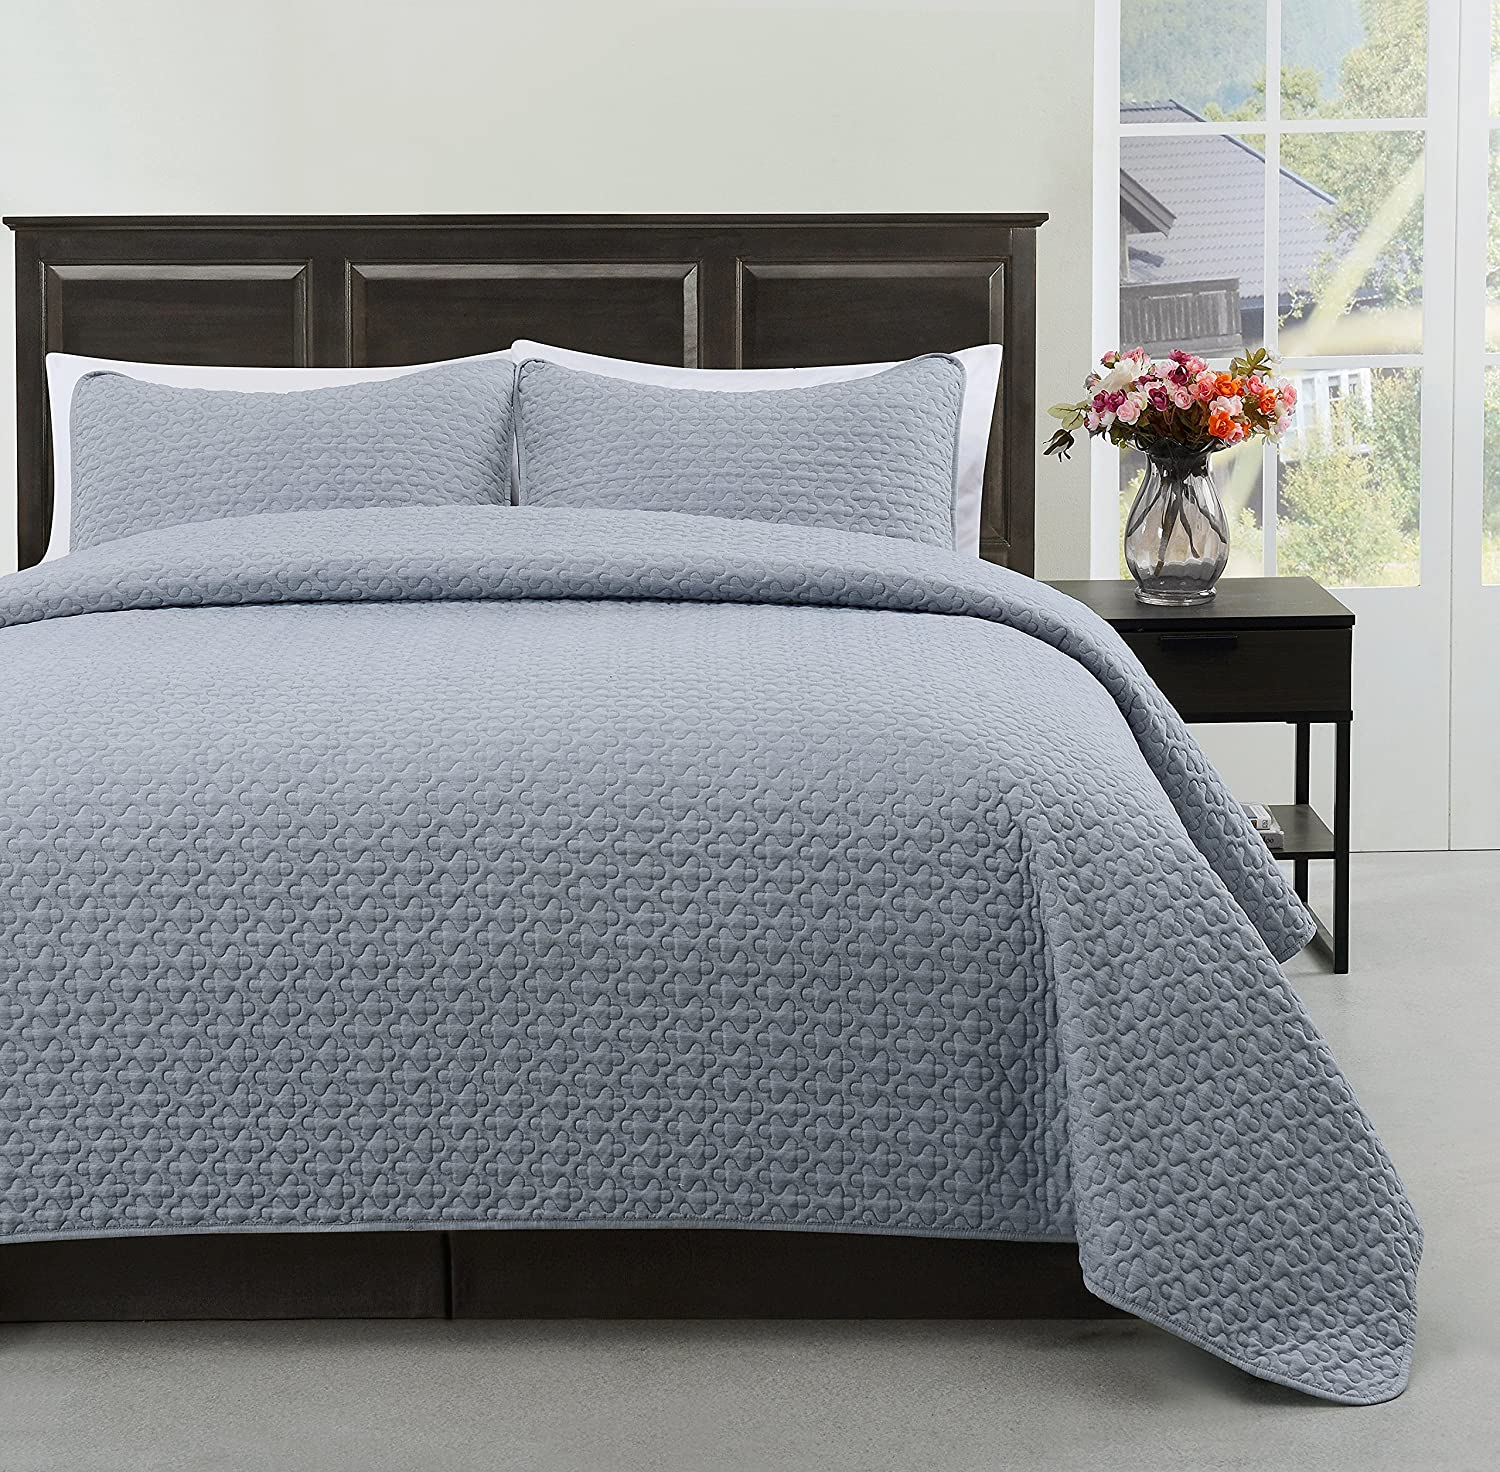 SuperBeddings Madison 3pc Bed Quilted Coverlet Bedspread Crafting :Designer Pattern 1 Bedspread, 2 Pillow Shams Included Color: Stone Blue Size:Full//Queen